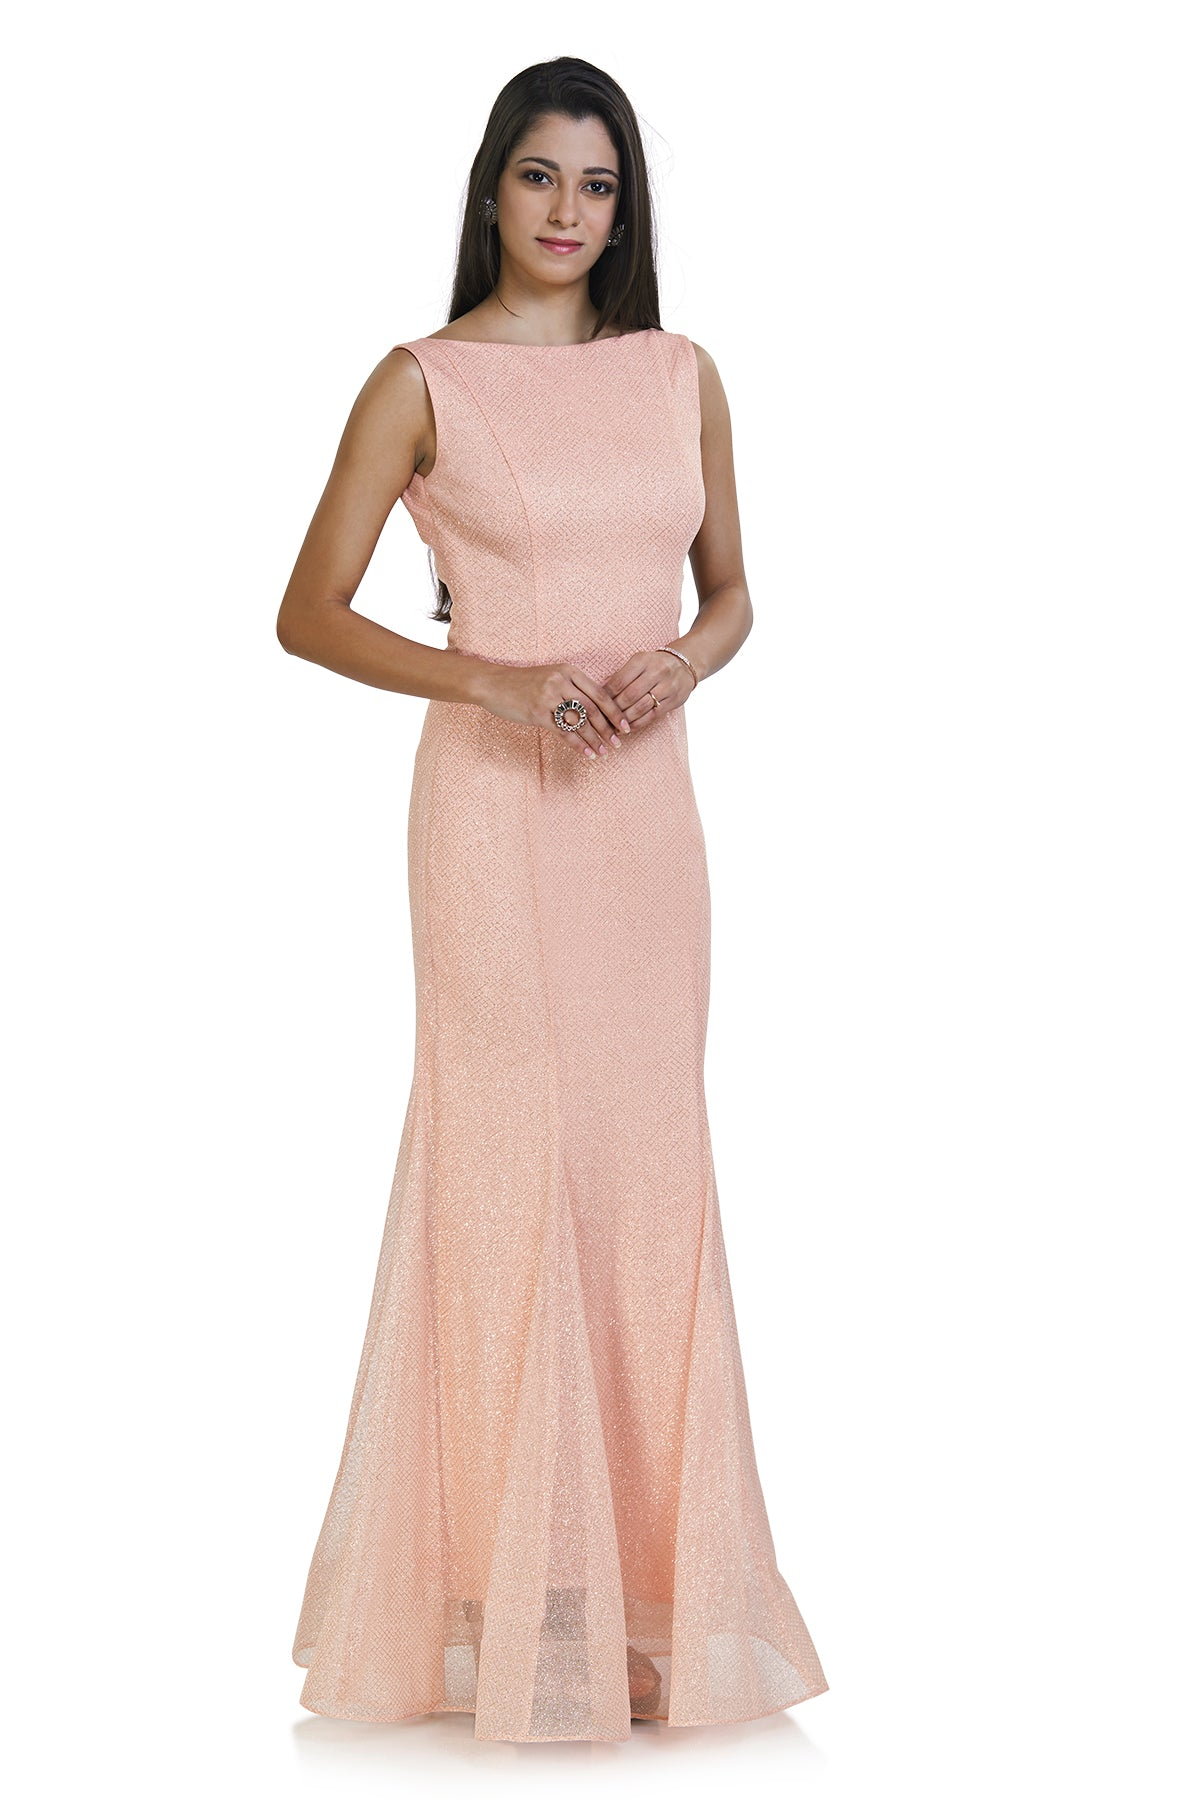 Get the party started with this classy baby pink gown and sparkle all through the night.